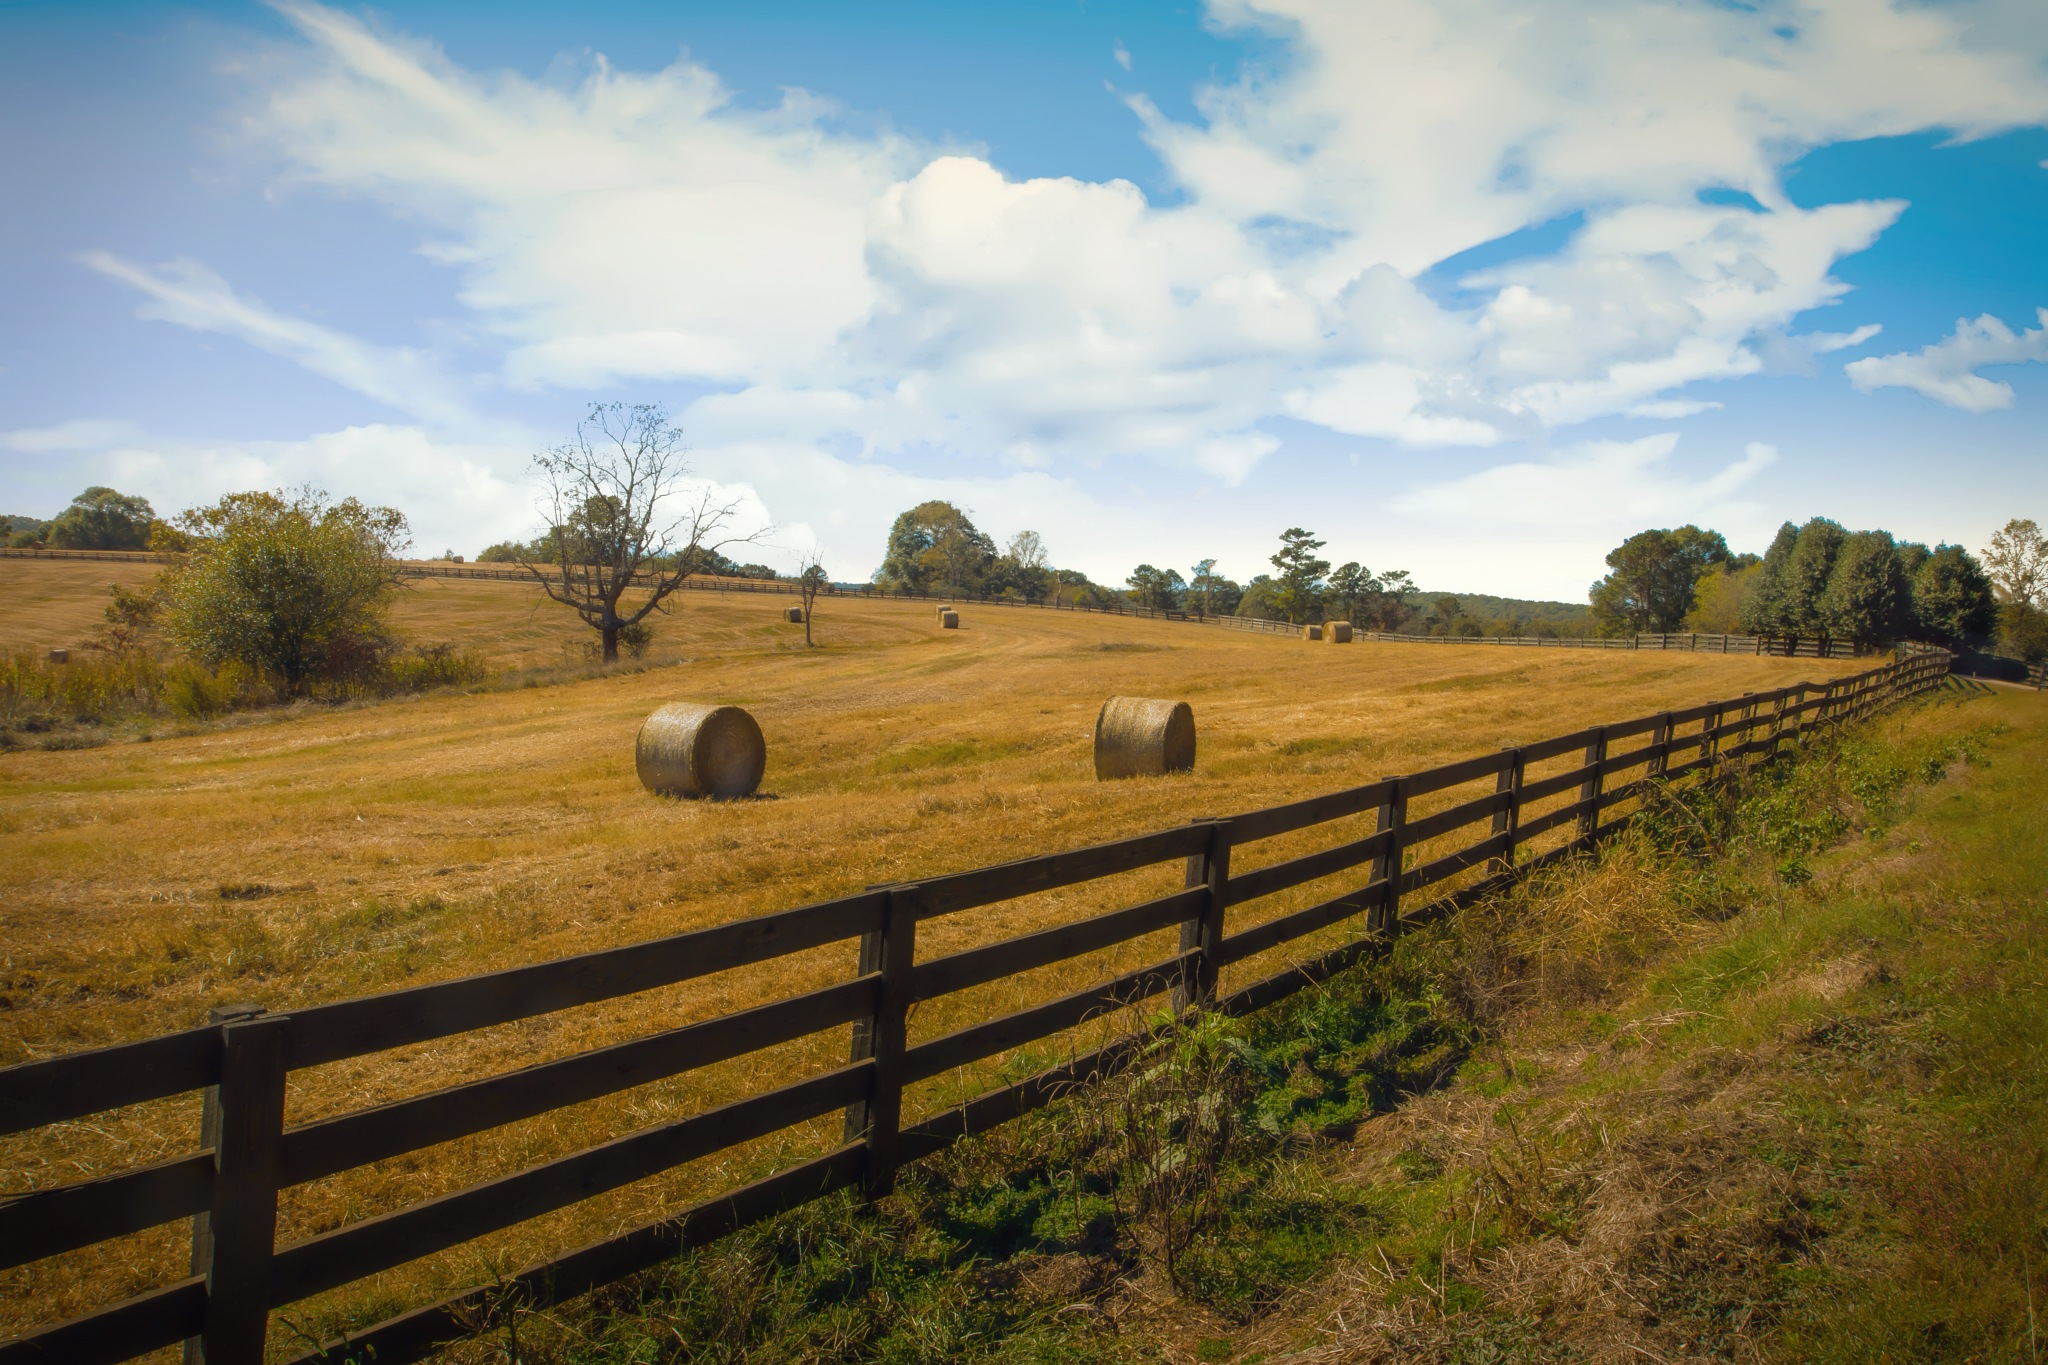 Hay bales in a field - North Georgia by Cherbeni